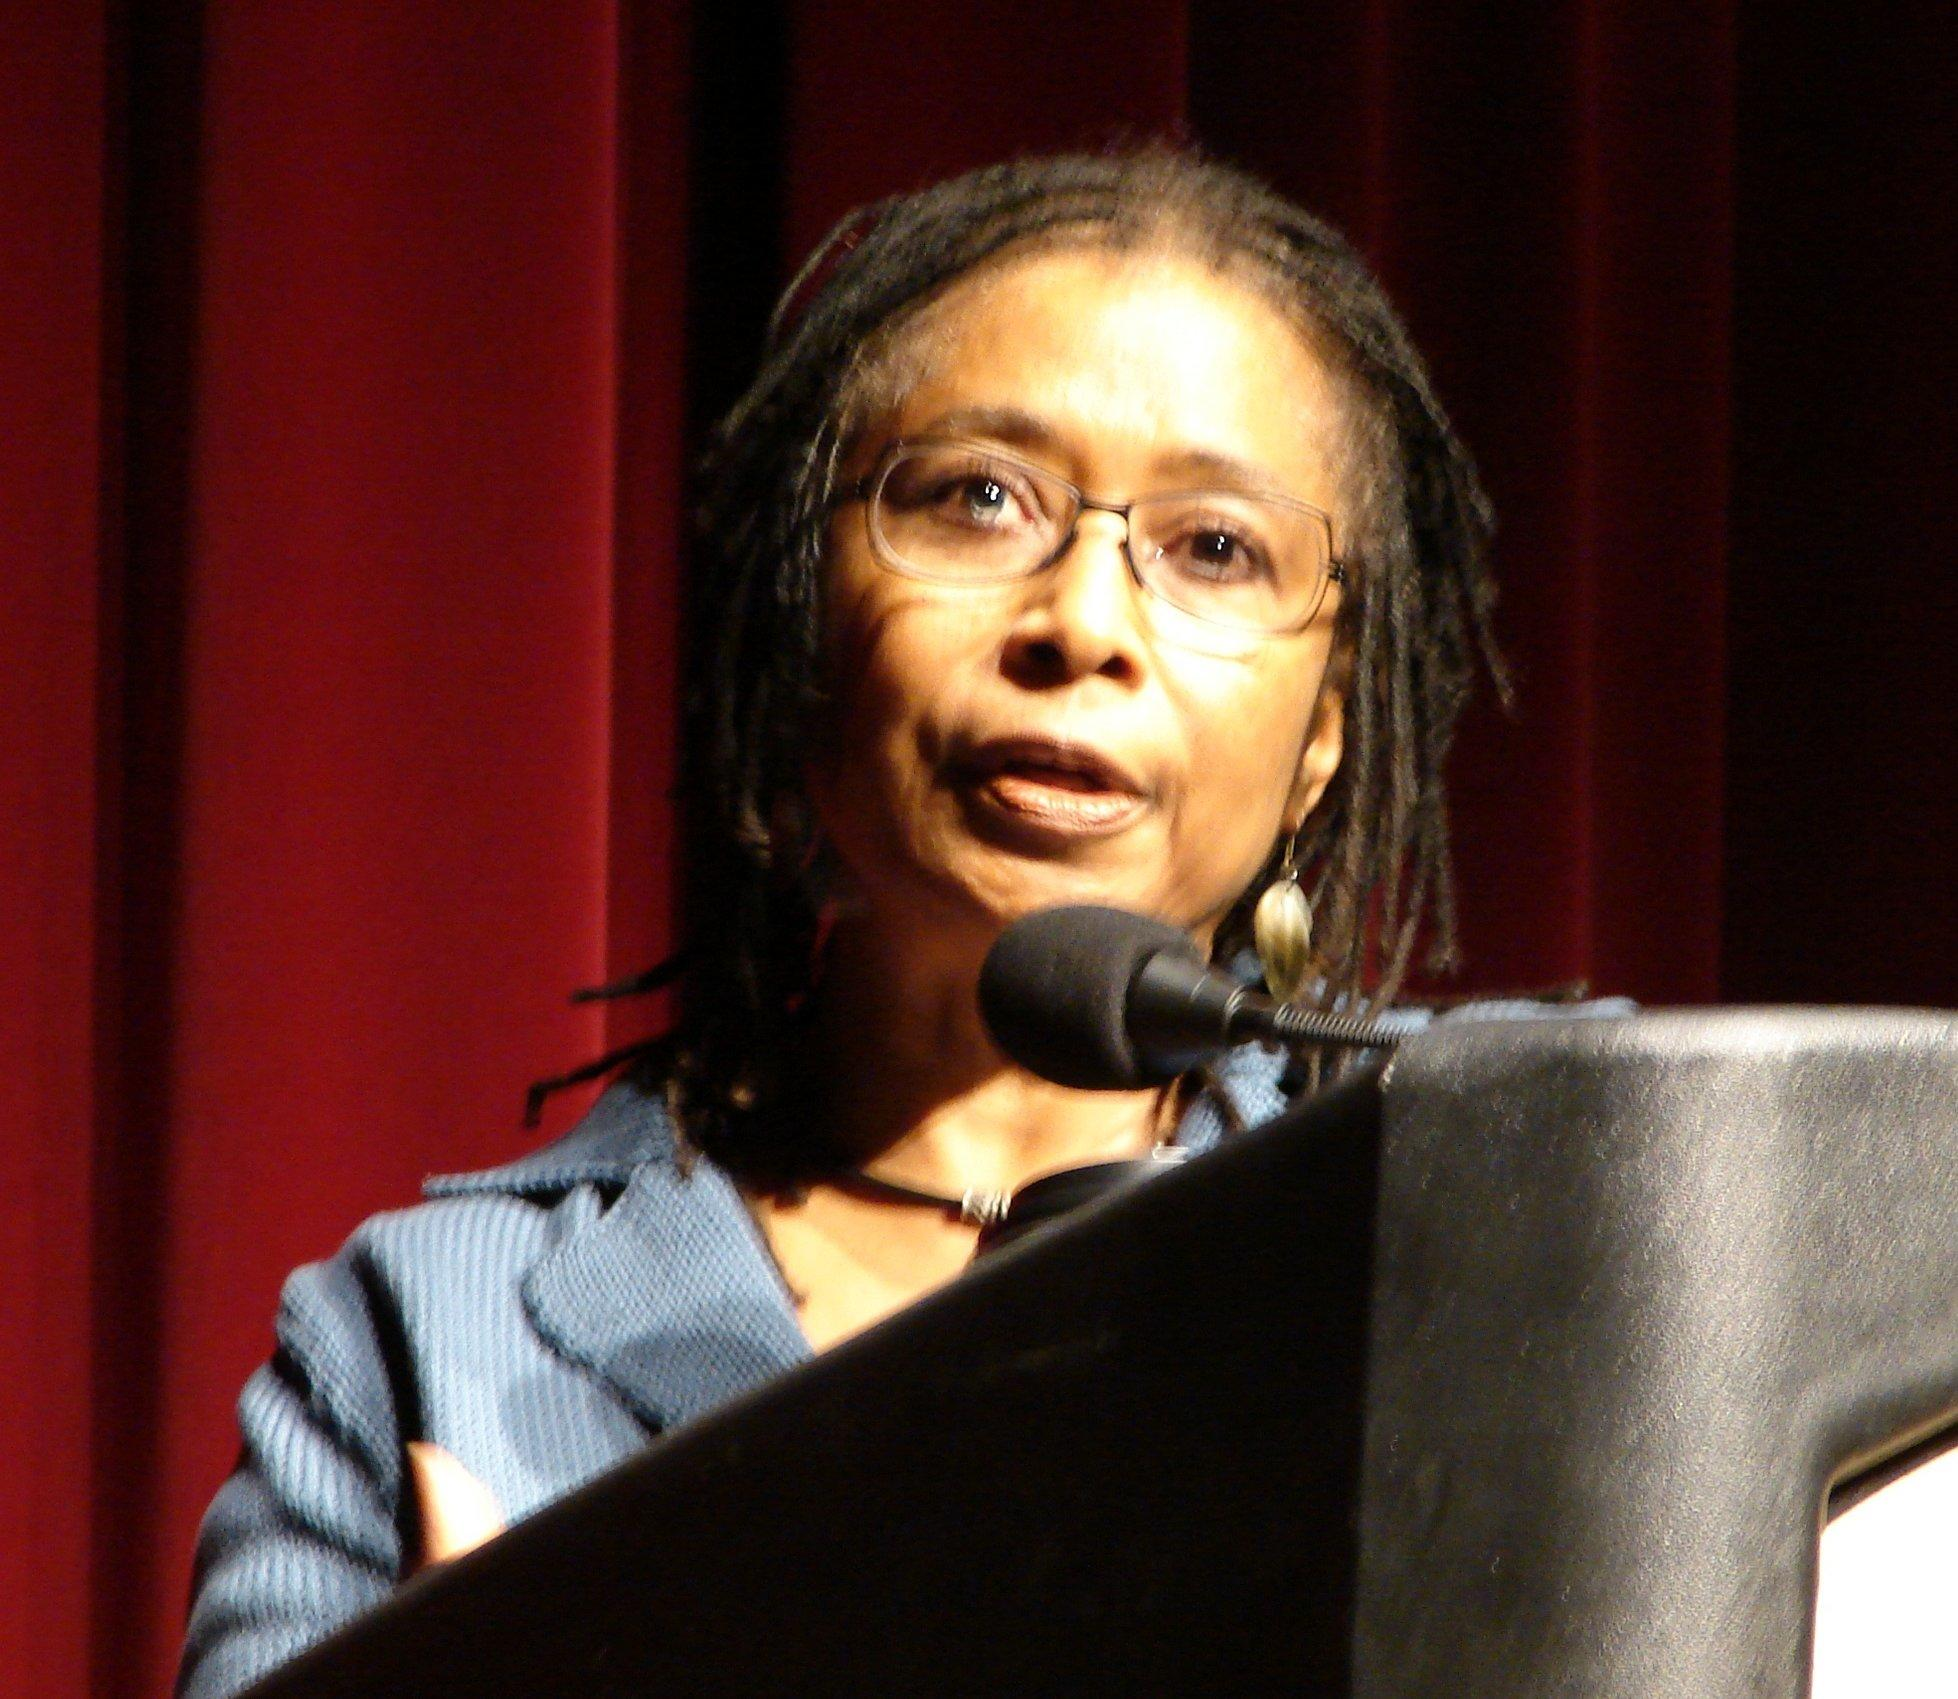 Virginia DeBolt, Alice Walker speaks, CC BY-SA 2.0, http://bit.ly/2aNv9FC